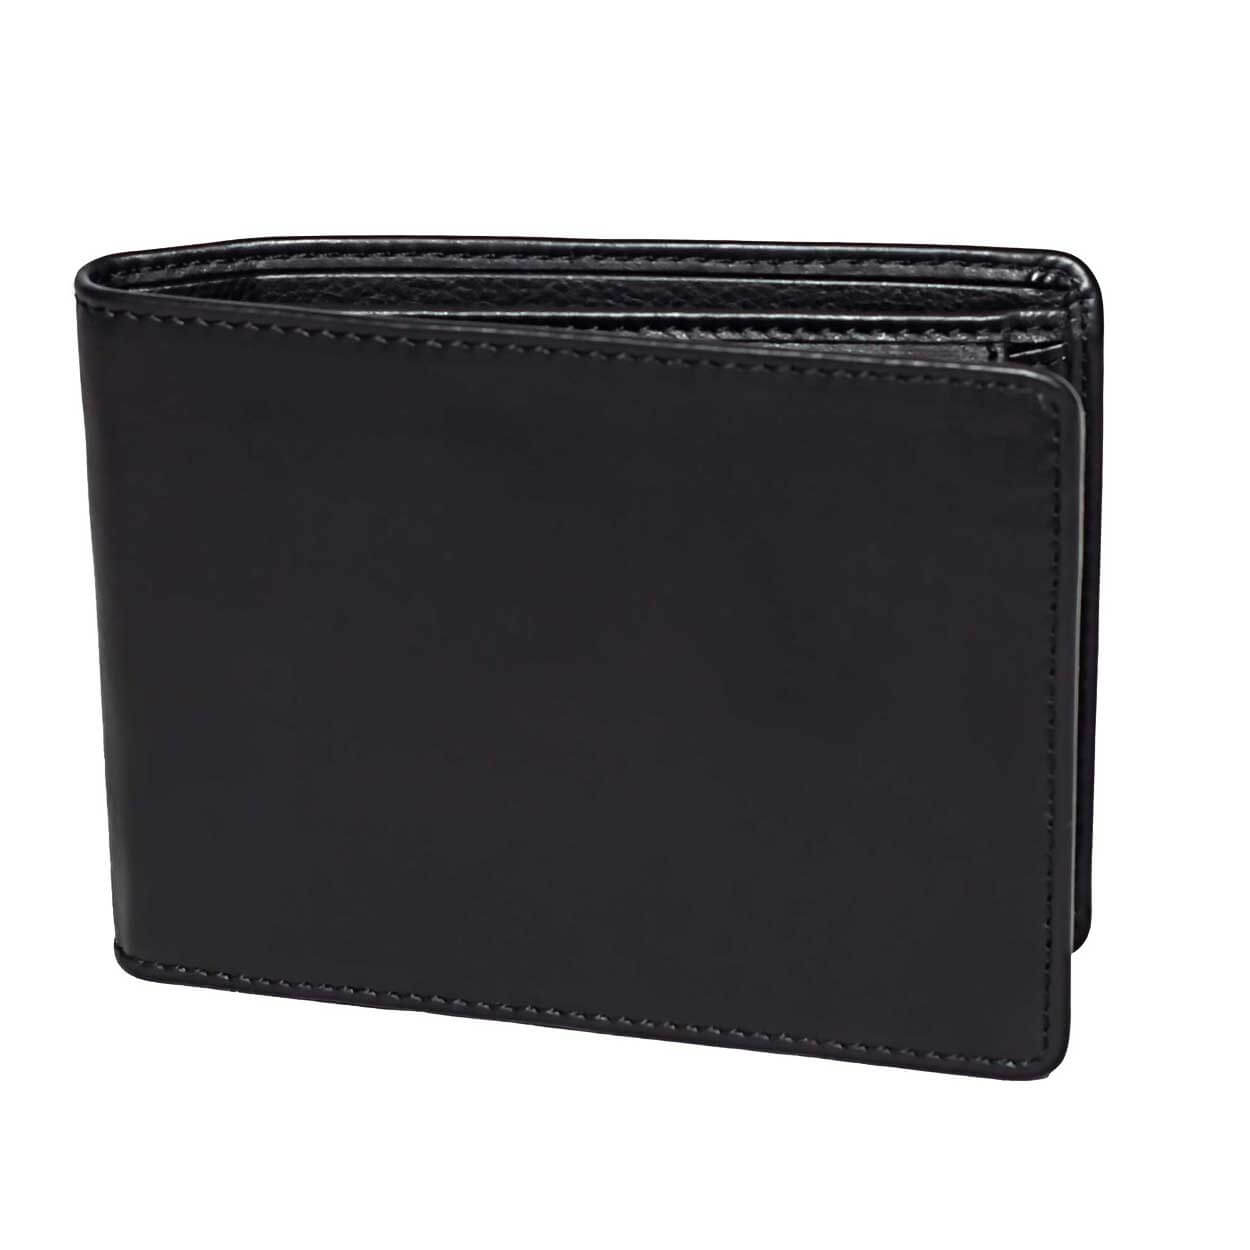 DiLoro Men's Leather Bifold Wallet with Flip ID, Coin Wallet and RFID Blocking Technology - Front View